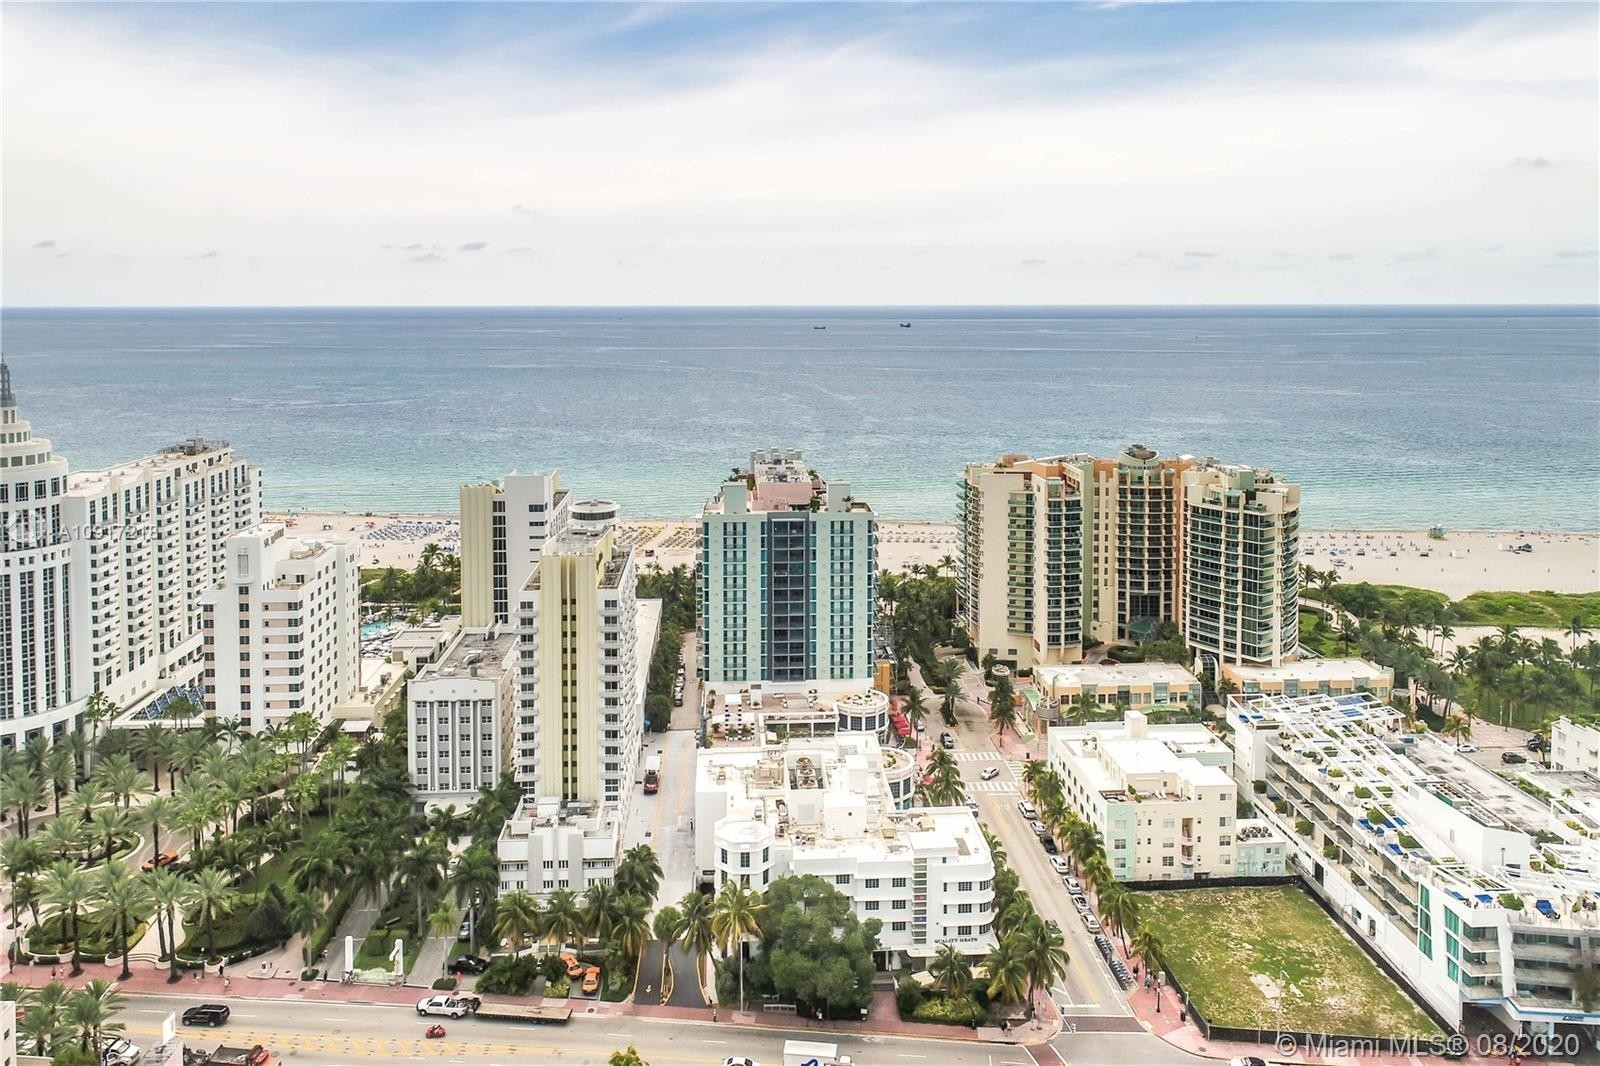 Property at 1500 Ocean Dr , 507 Miami Beach City Center, Miami Beach, FL 33139